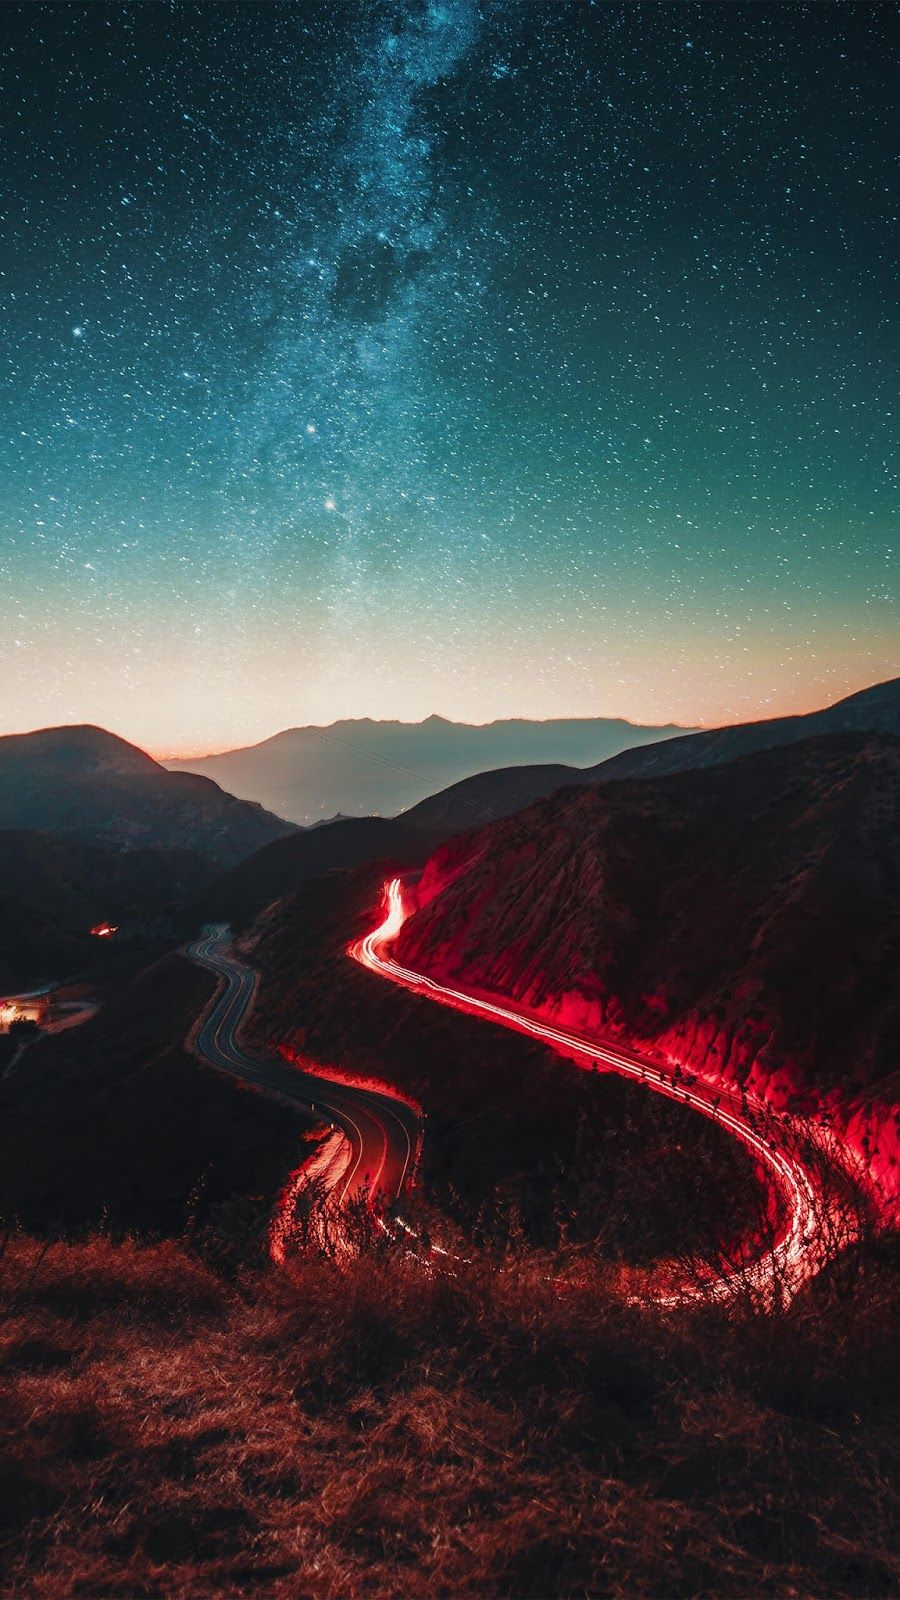 Road in the starry night wallpaper iphone android